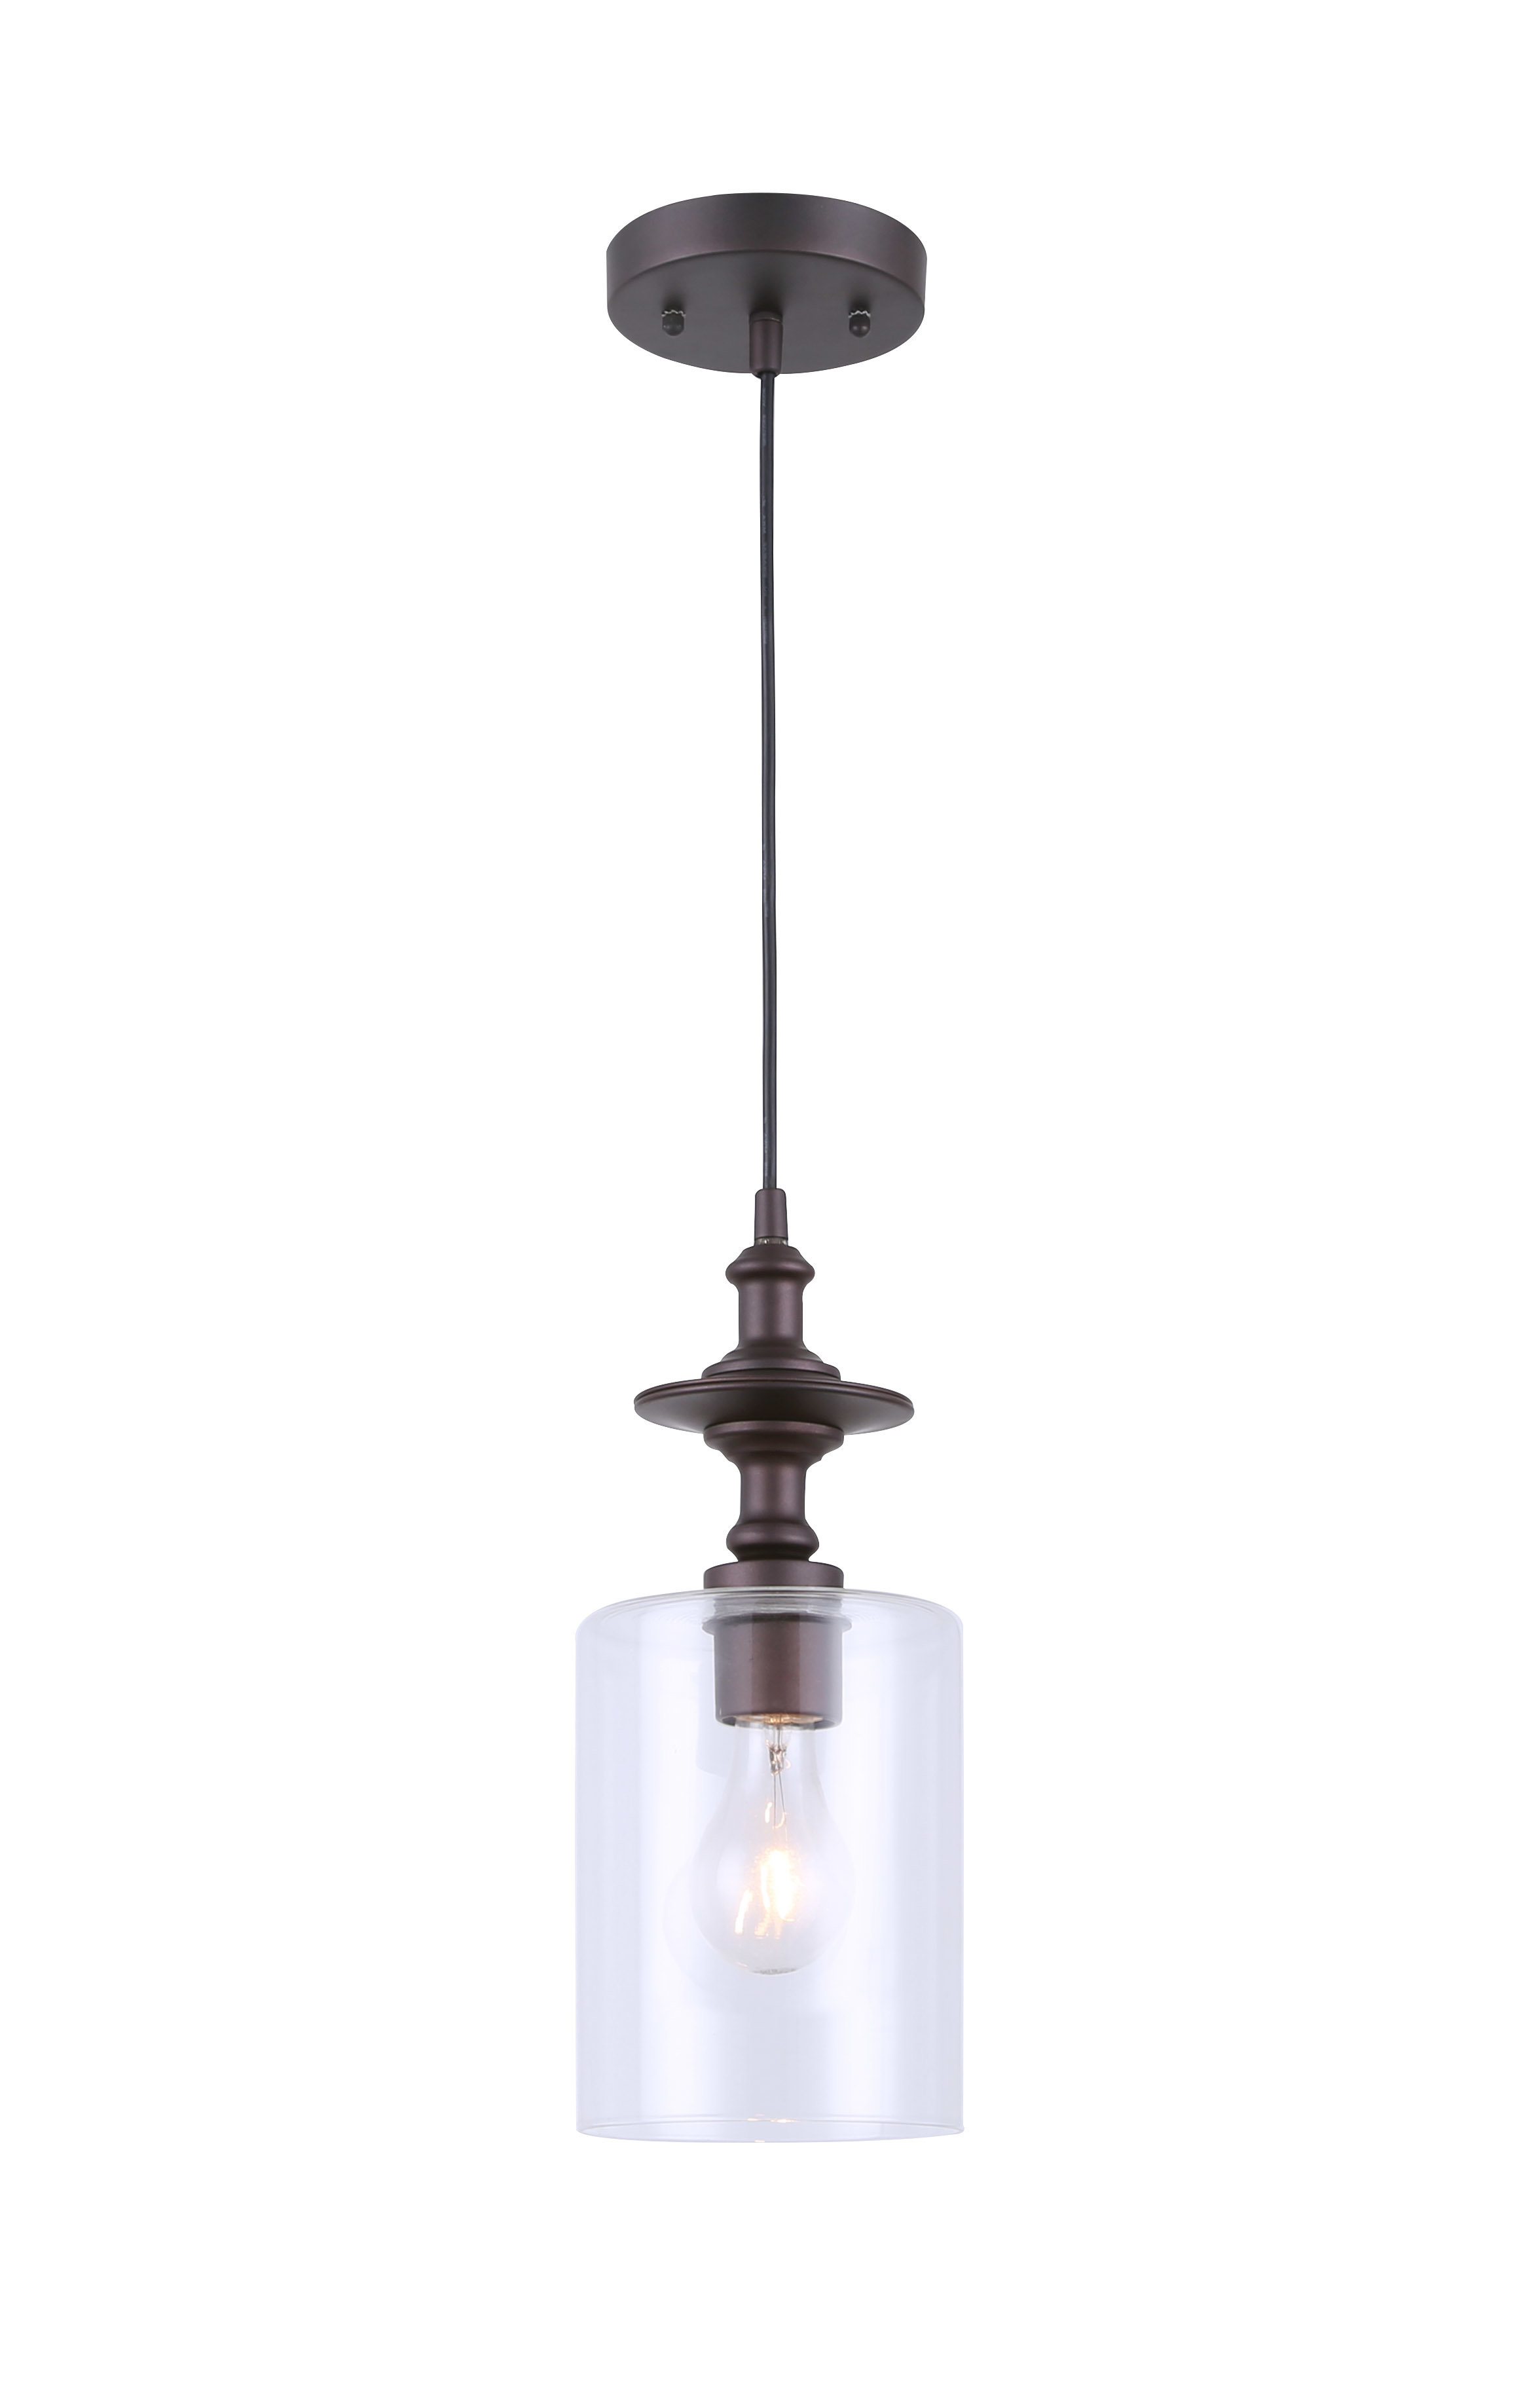 Moyer 1-Light Single Cylinder Pendant pertaining to Jayce 1-Light Cylinder Pendants (Image 15 of 30)